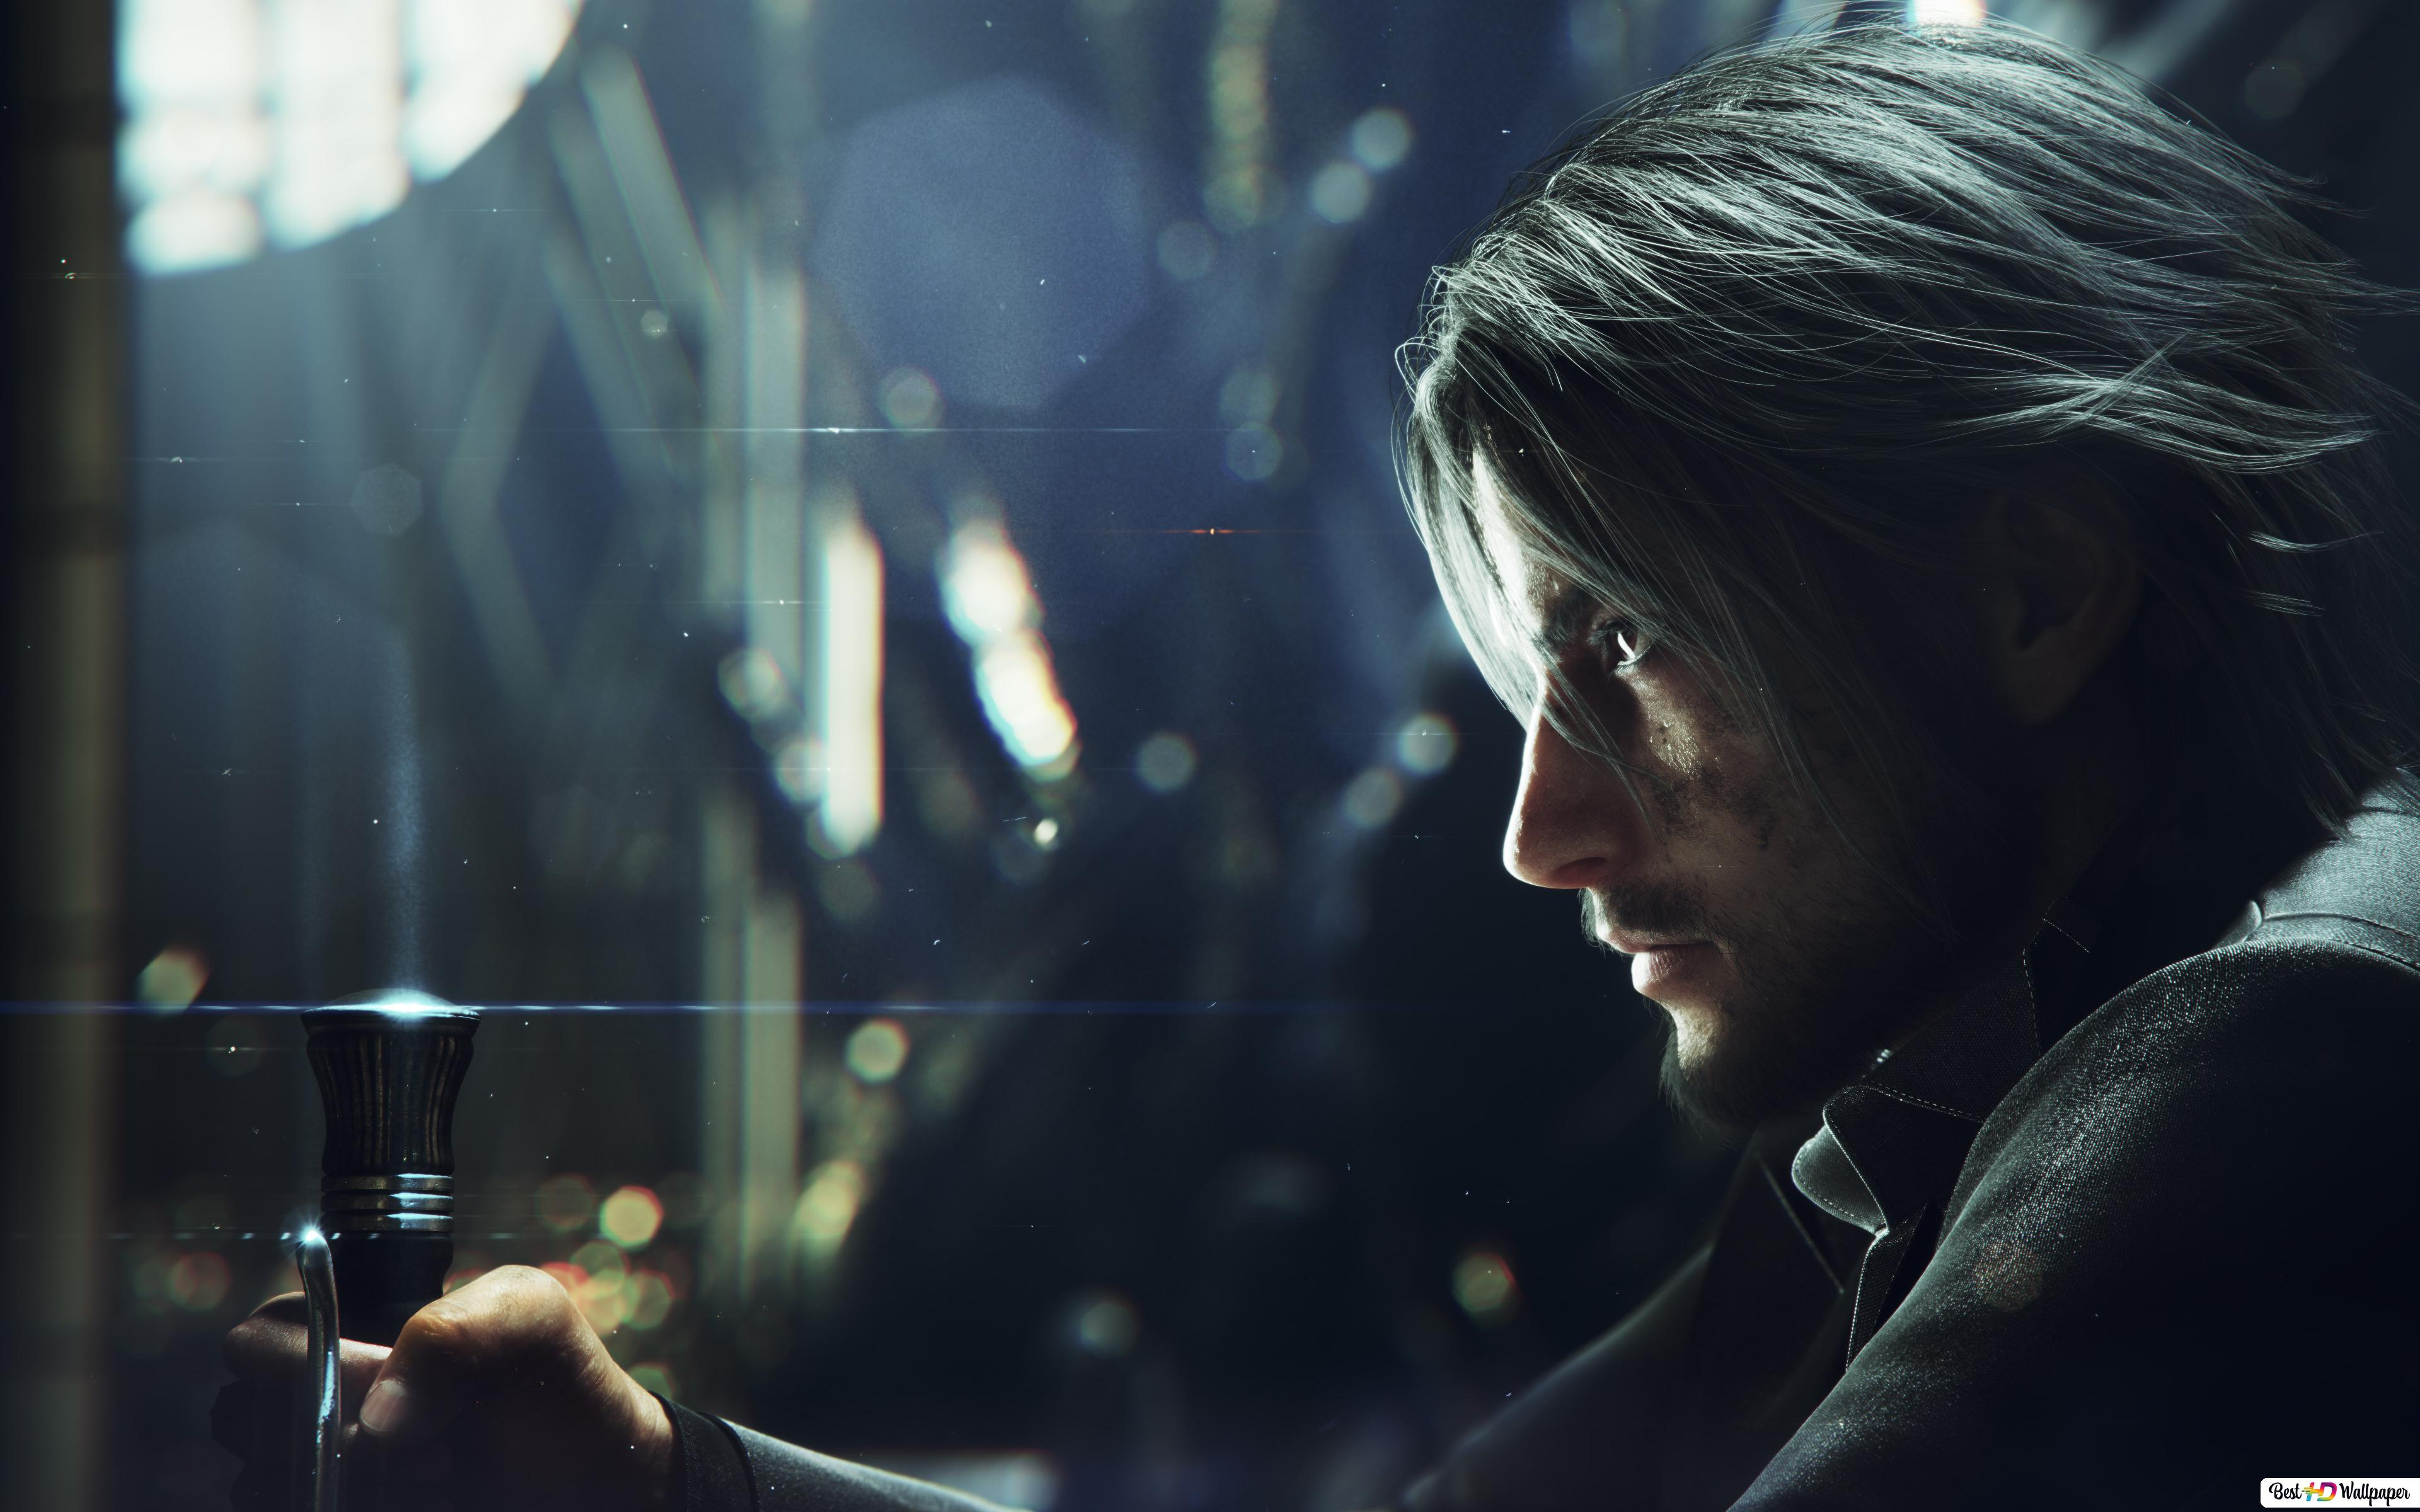 Final Fantasy Xv Prince Noctis On His Throne Hd Wallpaper Download